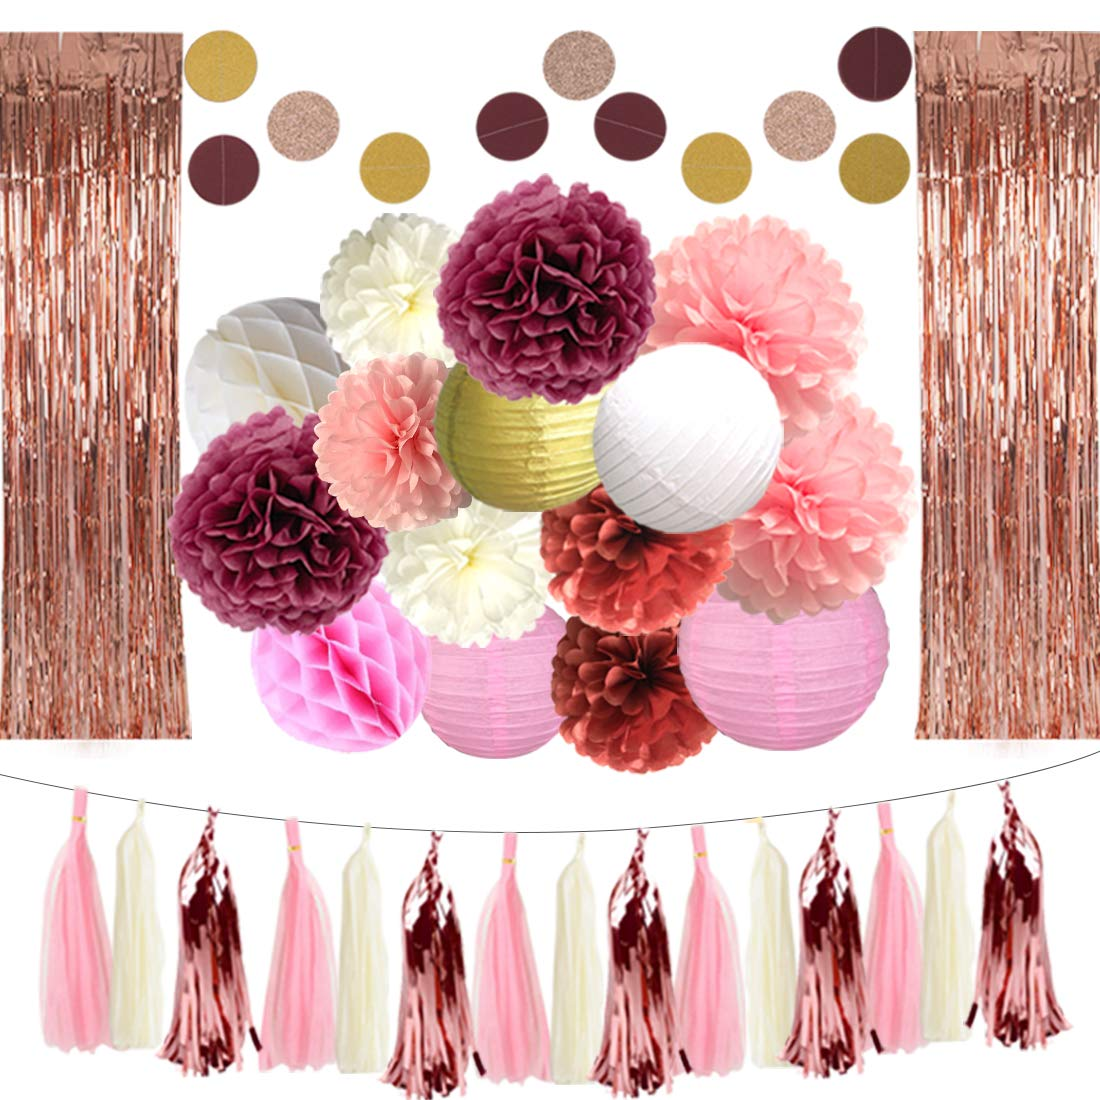 DXZN 33 PCS Rose Gold Party Decorations 2 Pack 8.2FT Long Foil Fringe Curtain Tissue Pom Poms Paper Lantern Paper Garland 9.8FT Long Tissue Tassel for Wedding Birthday Bridal Shower Valentine's Day